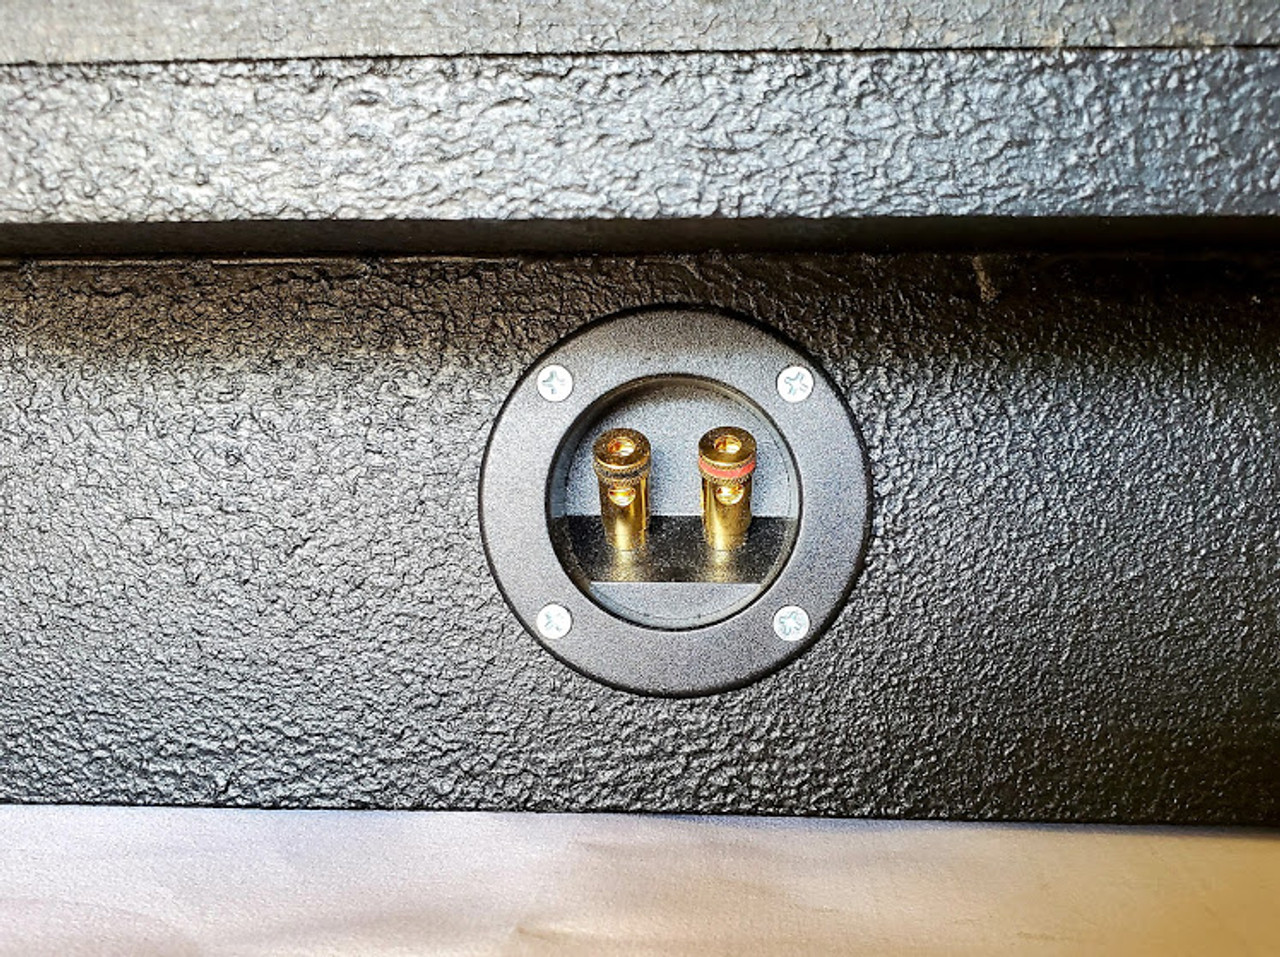 Jeep Gladiator Subwoofer Box And Subwoofer Combo